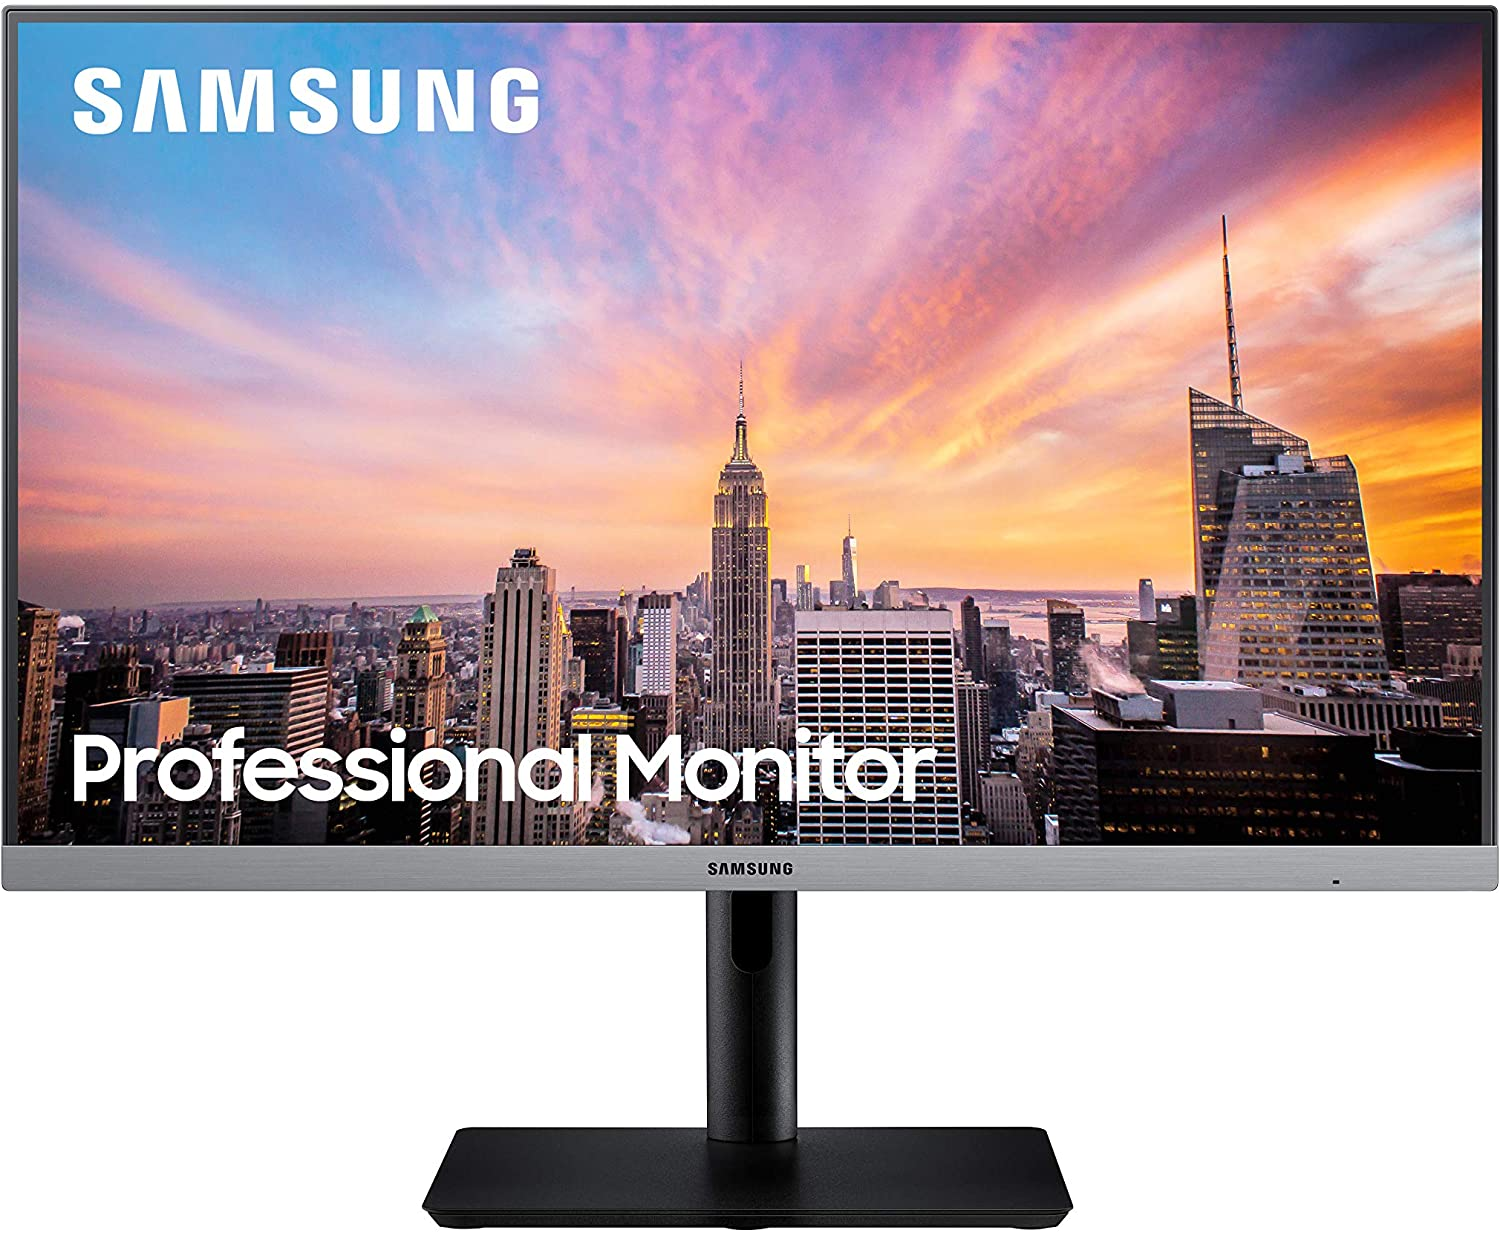 Samsung Business S27R650FDN, SR650 Series 27 inch IPS 1080p 75Hz Computer Monitor for Business with VGA, HDMI, DisplayPort, and USB Hub, 3-Year Warranty